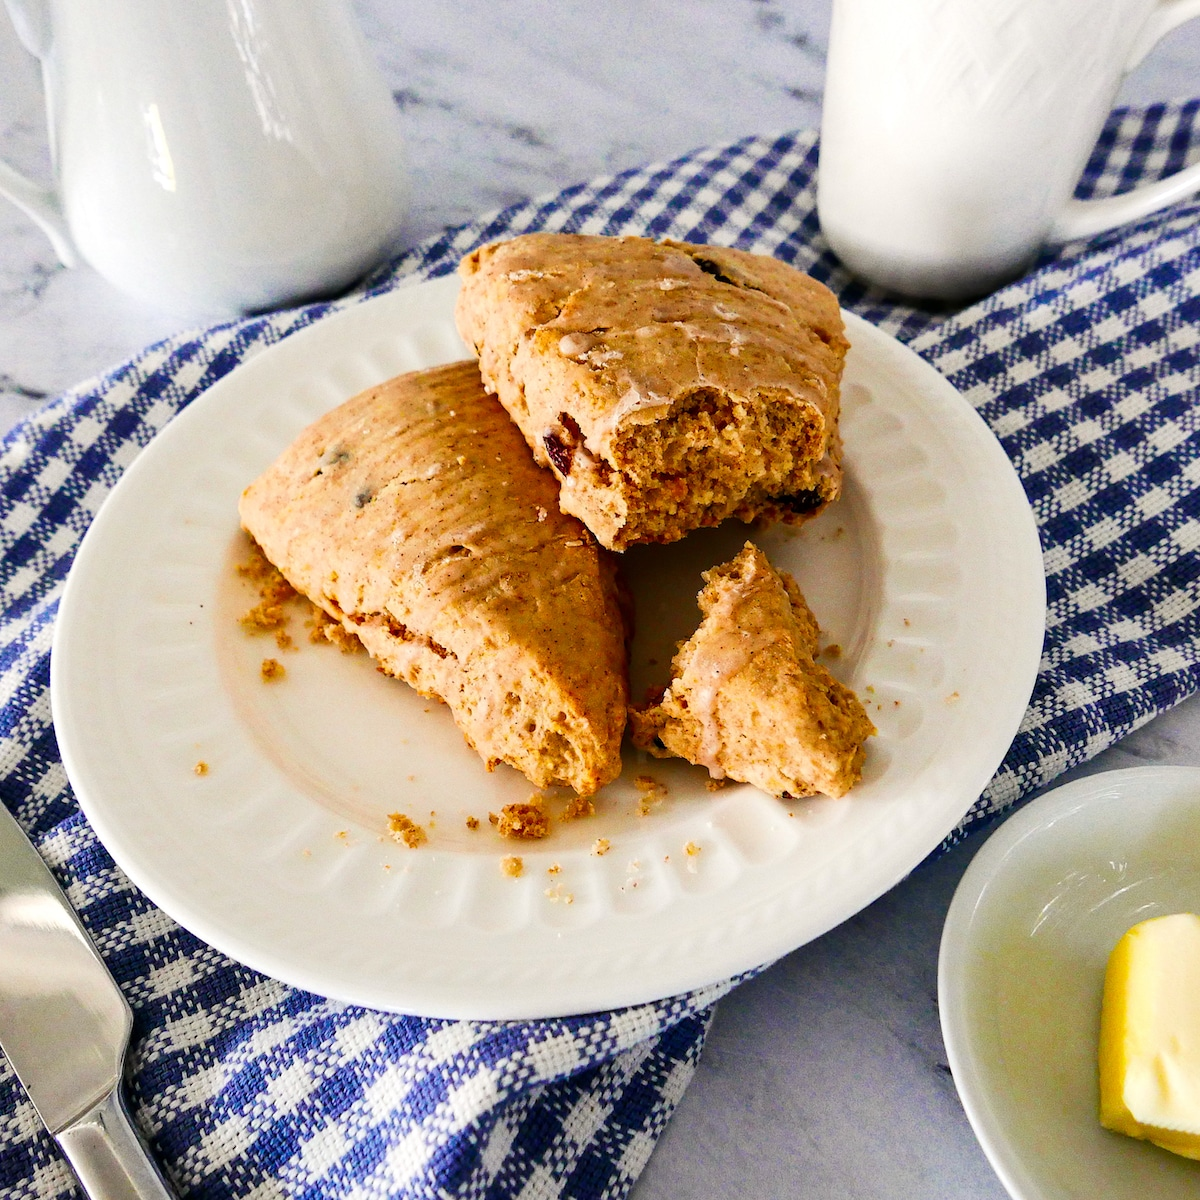 two cinnamon raisin scones on a white plate with piece broken off and resting on a plaid napkin